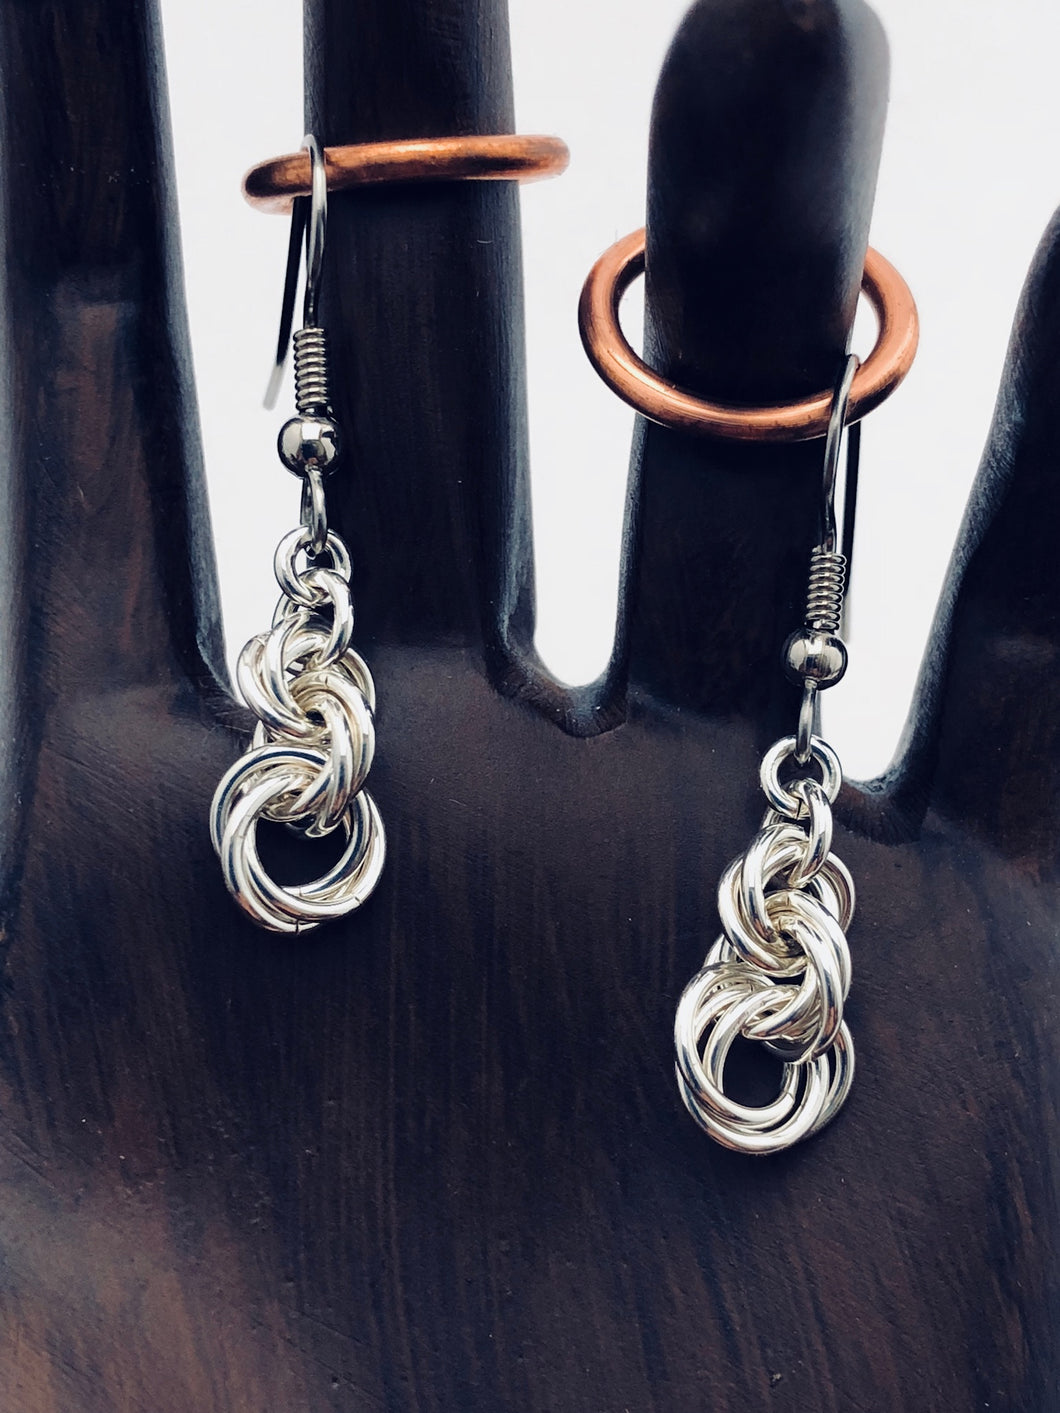 seaXwolf fine handmade jewelry solid sterling silver chain earrings entitled